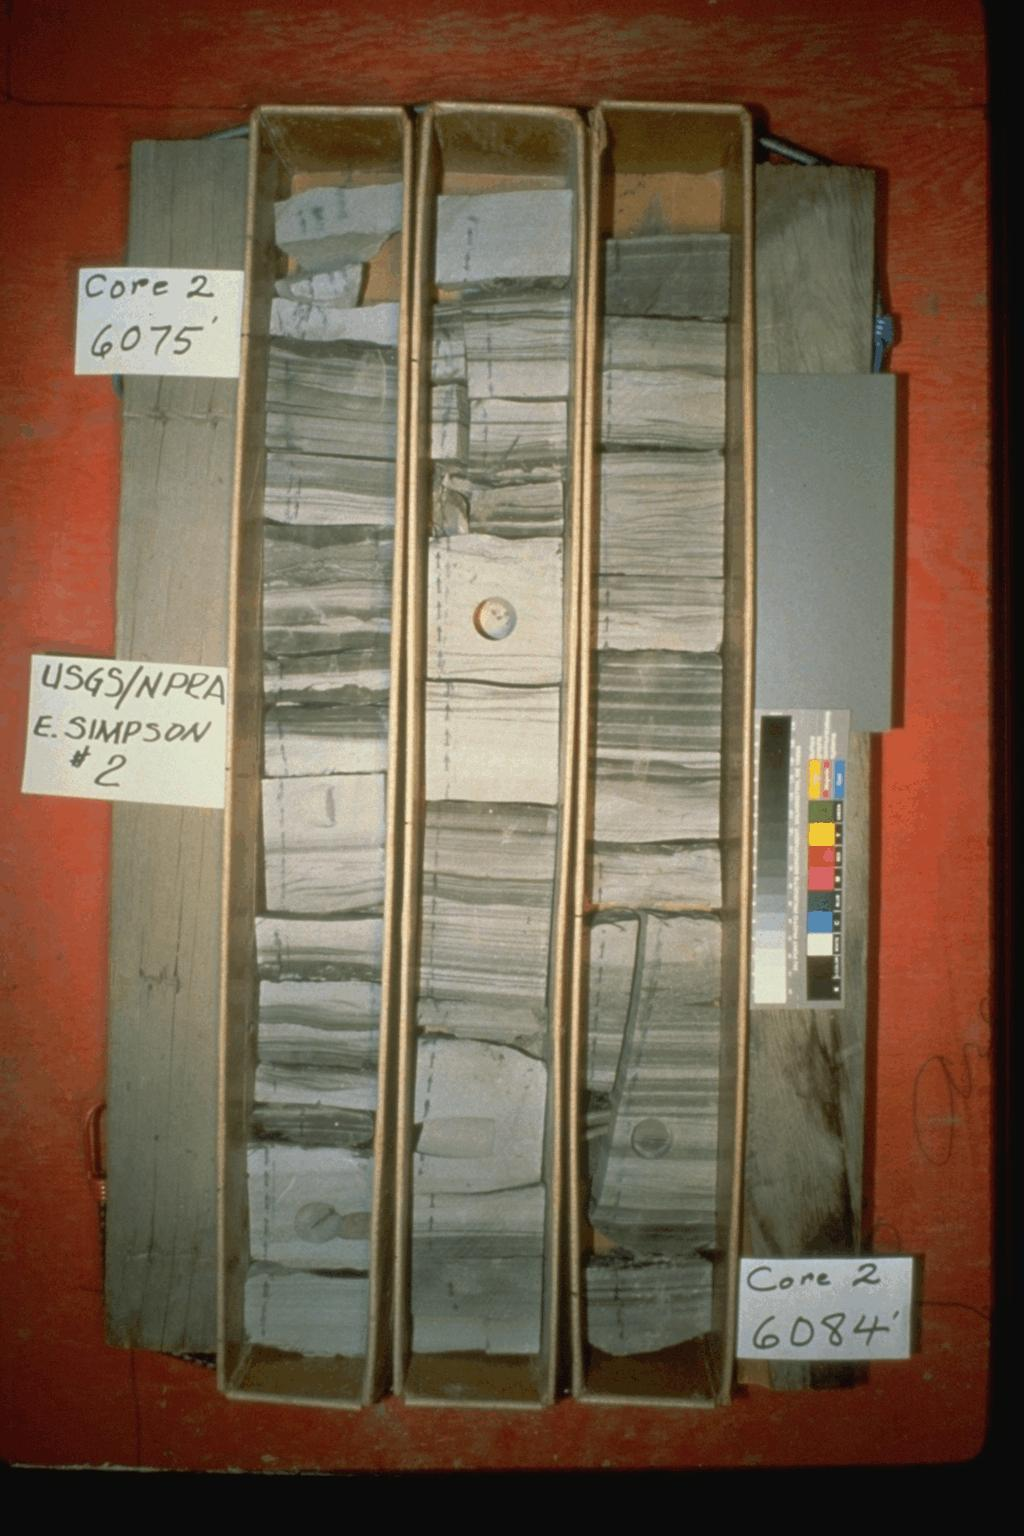 A box containing 9 feet of 4-inch diameter core from the National Petroleum Reserve, Alaska, showing the fine-scale structure and composition of the rock layers being drilled.